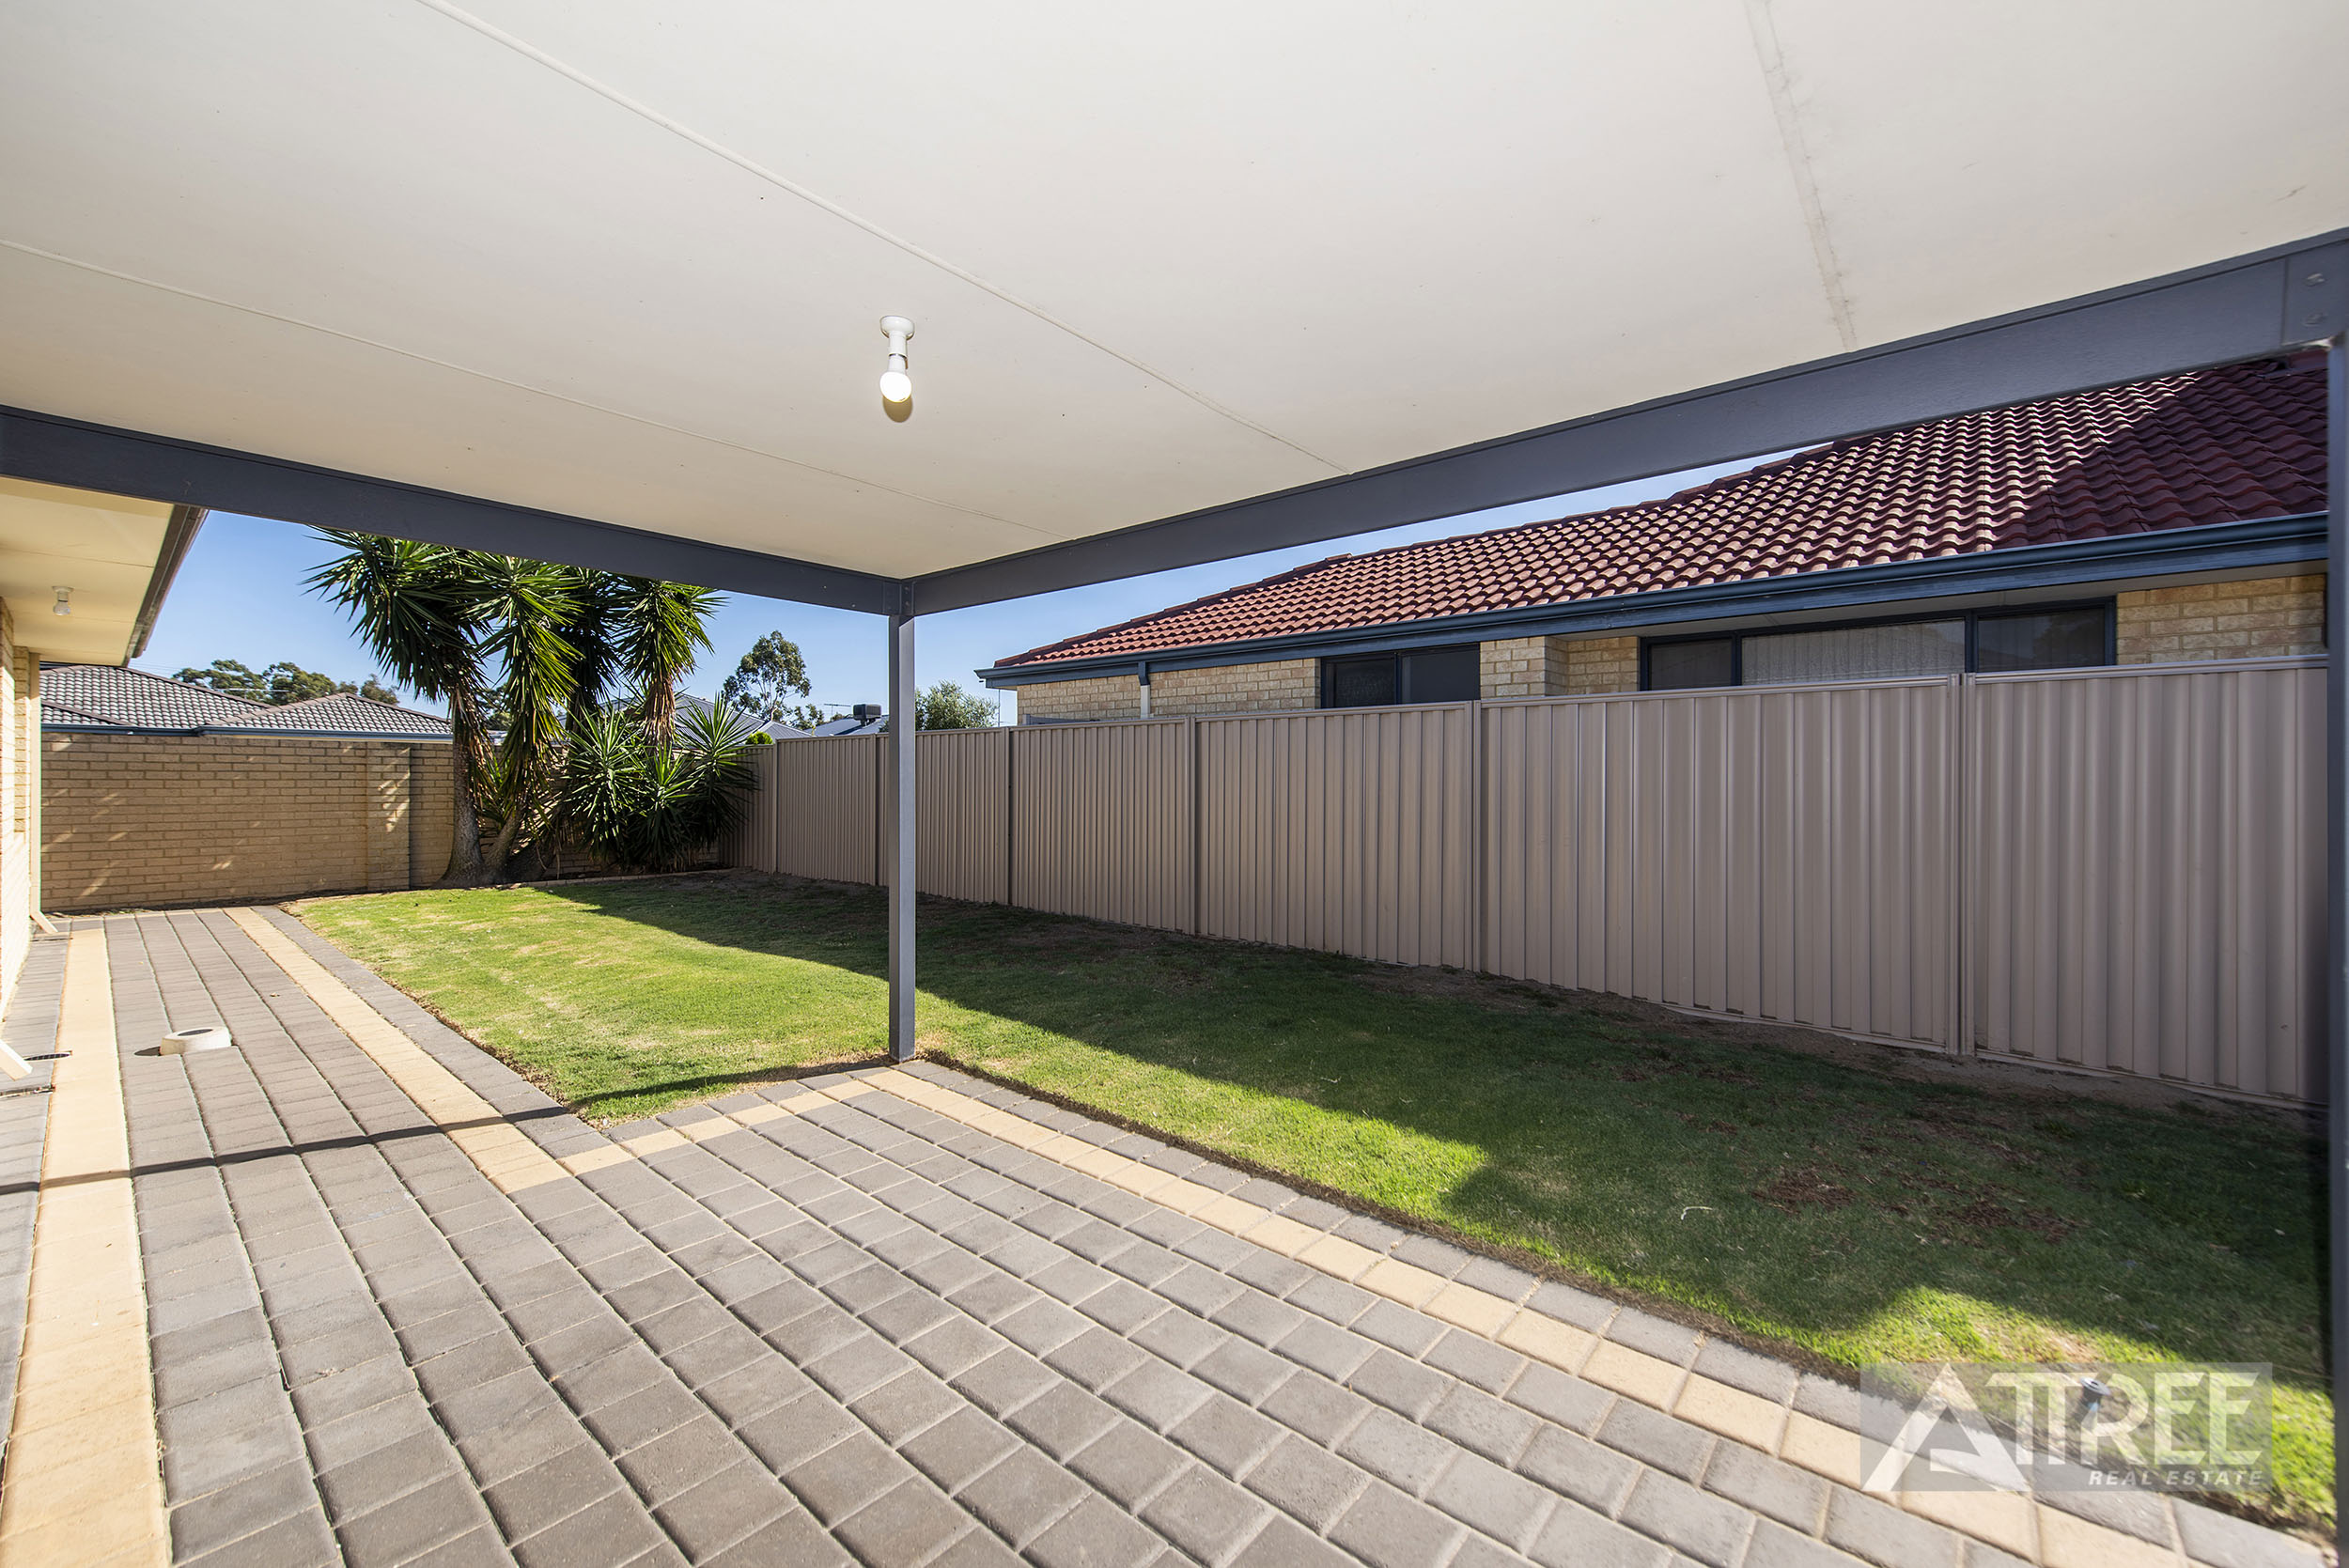 Property for sale in HARRISDALE, 7 Binnia Mews : Attree Real Estate